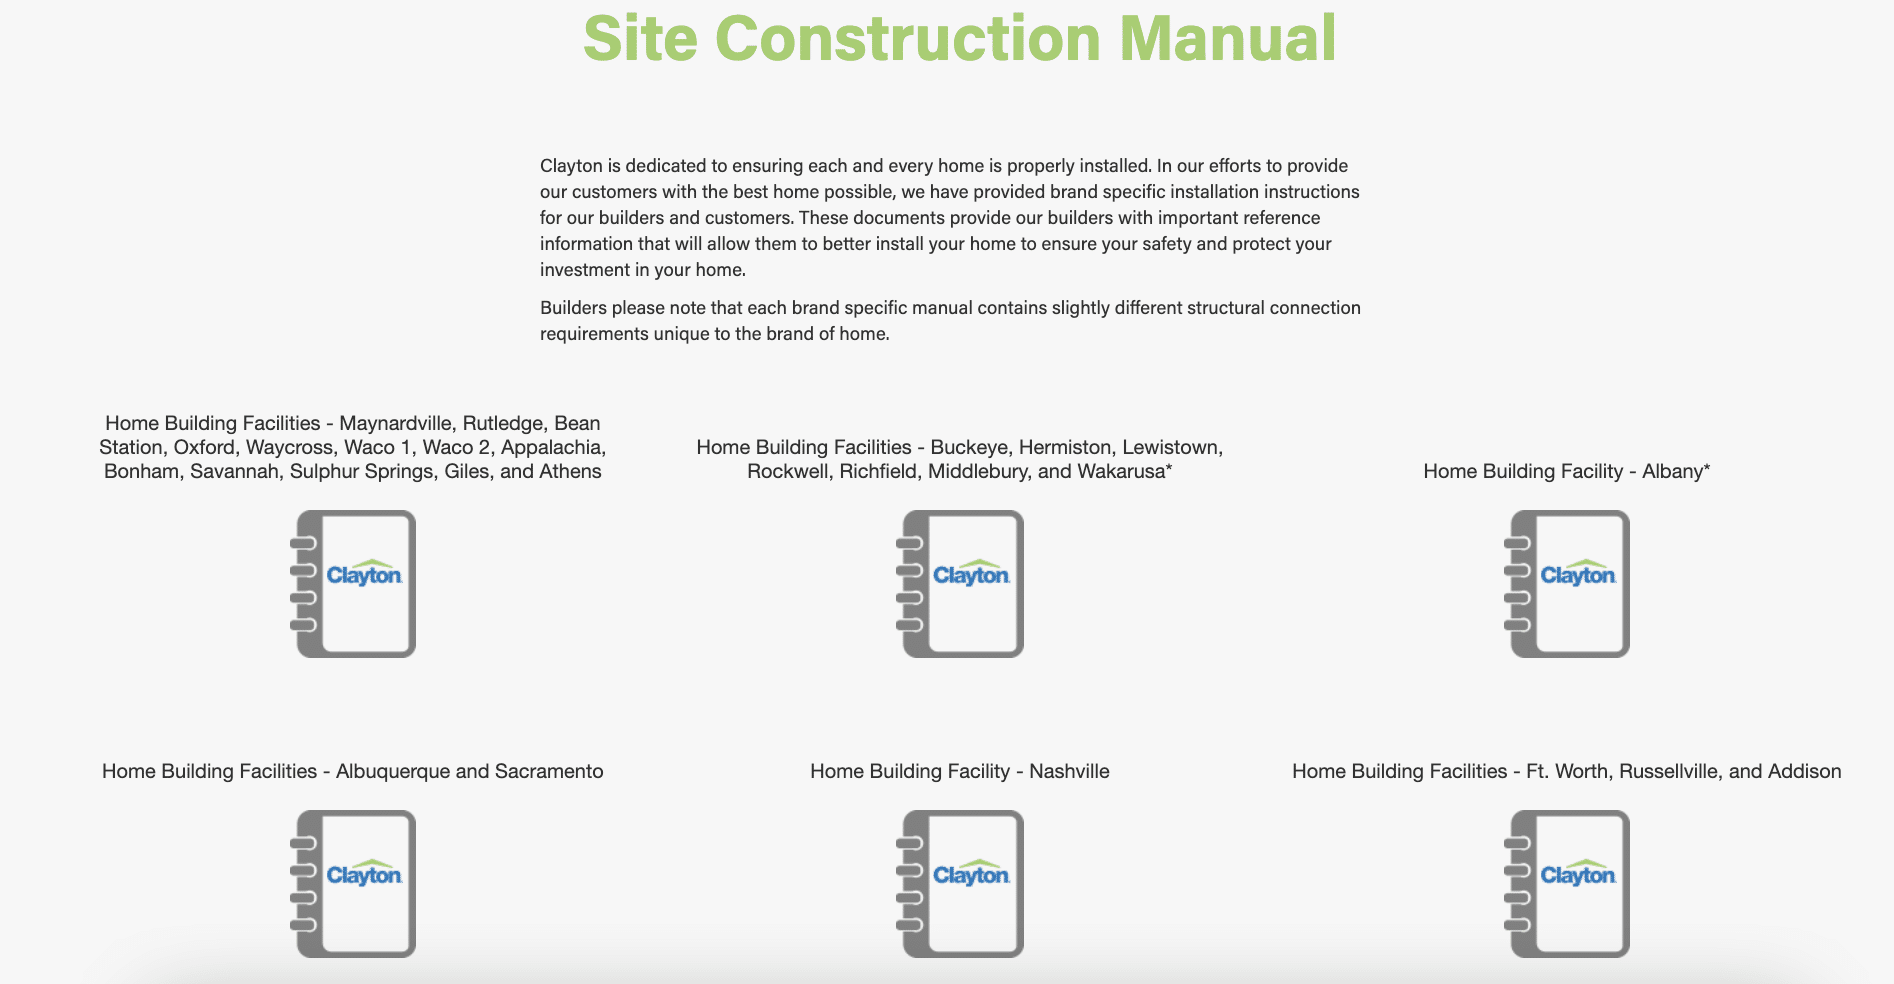 Clayton homes website - site construction manuals